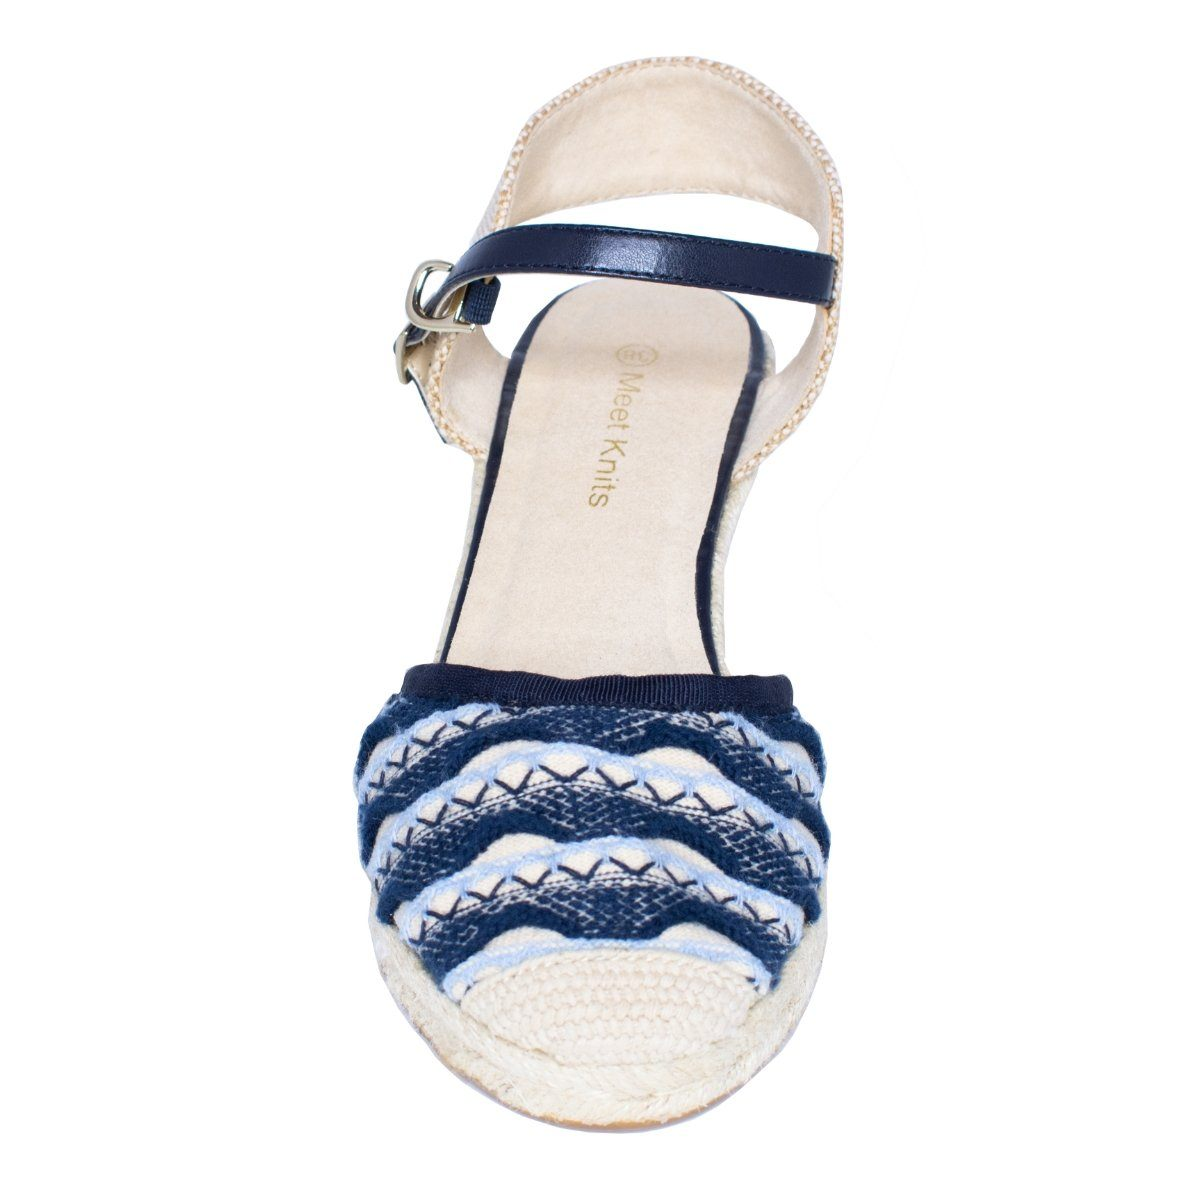 Top close view of wedge sandal with buckle and closed toe in Navy blue